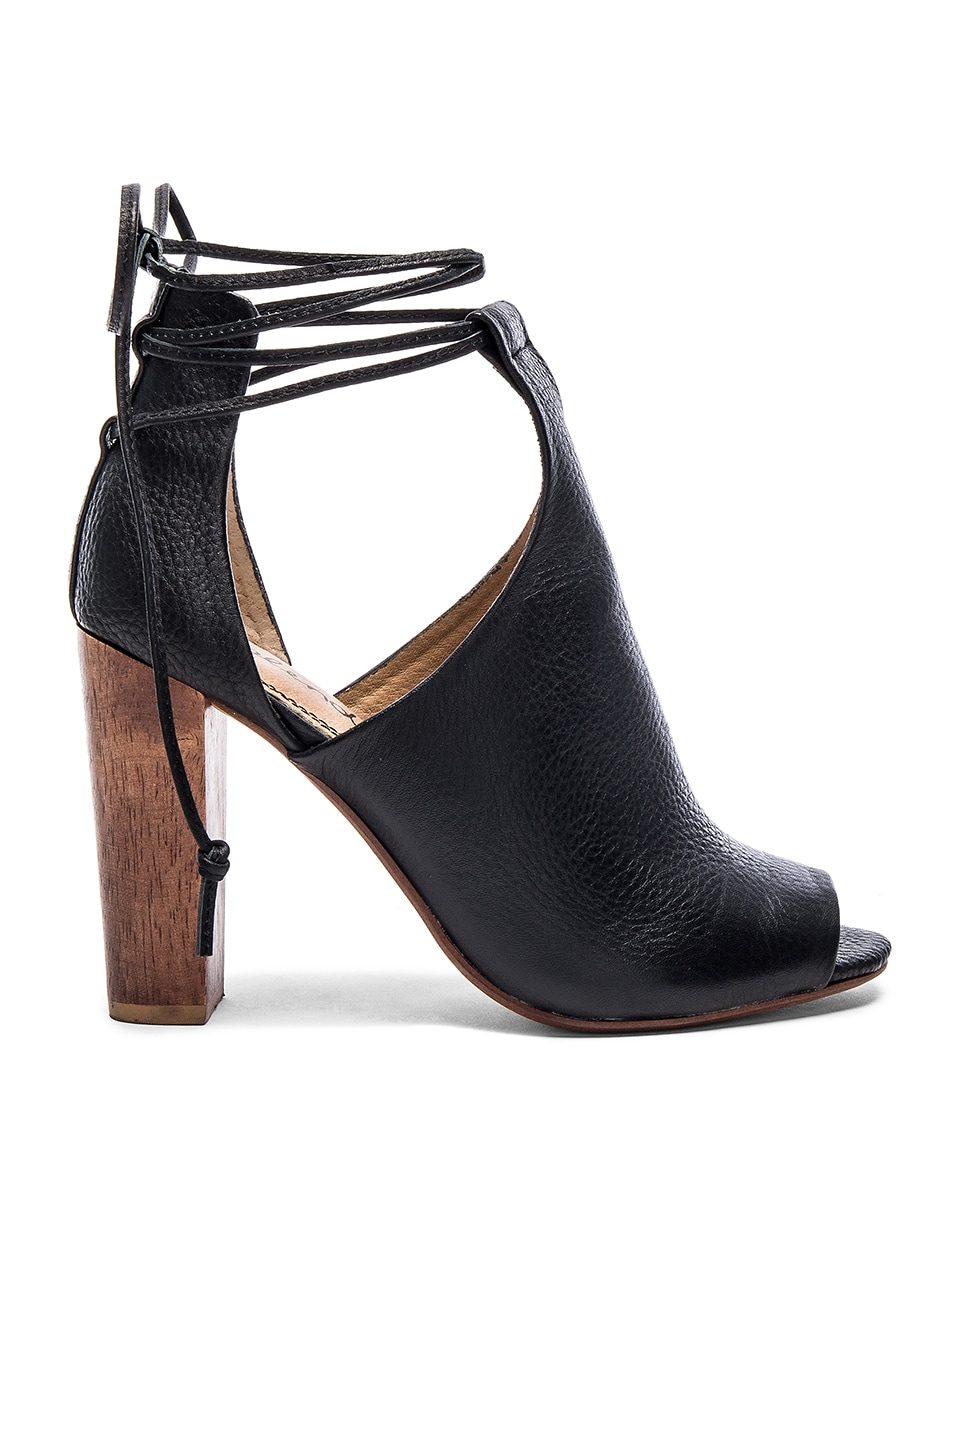 Splendid Jaylen Sandal in Black Tumbled Leather